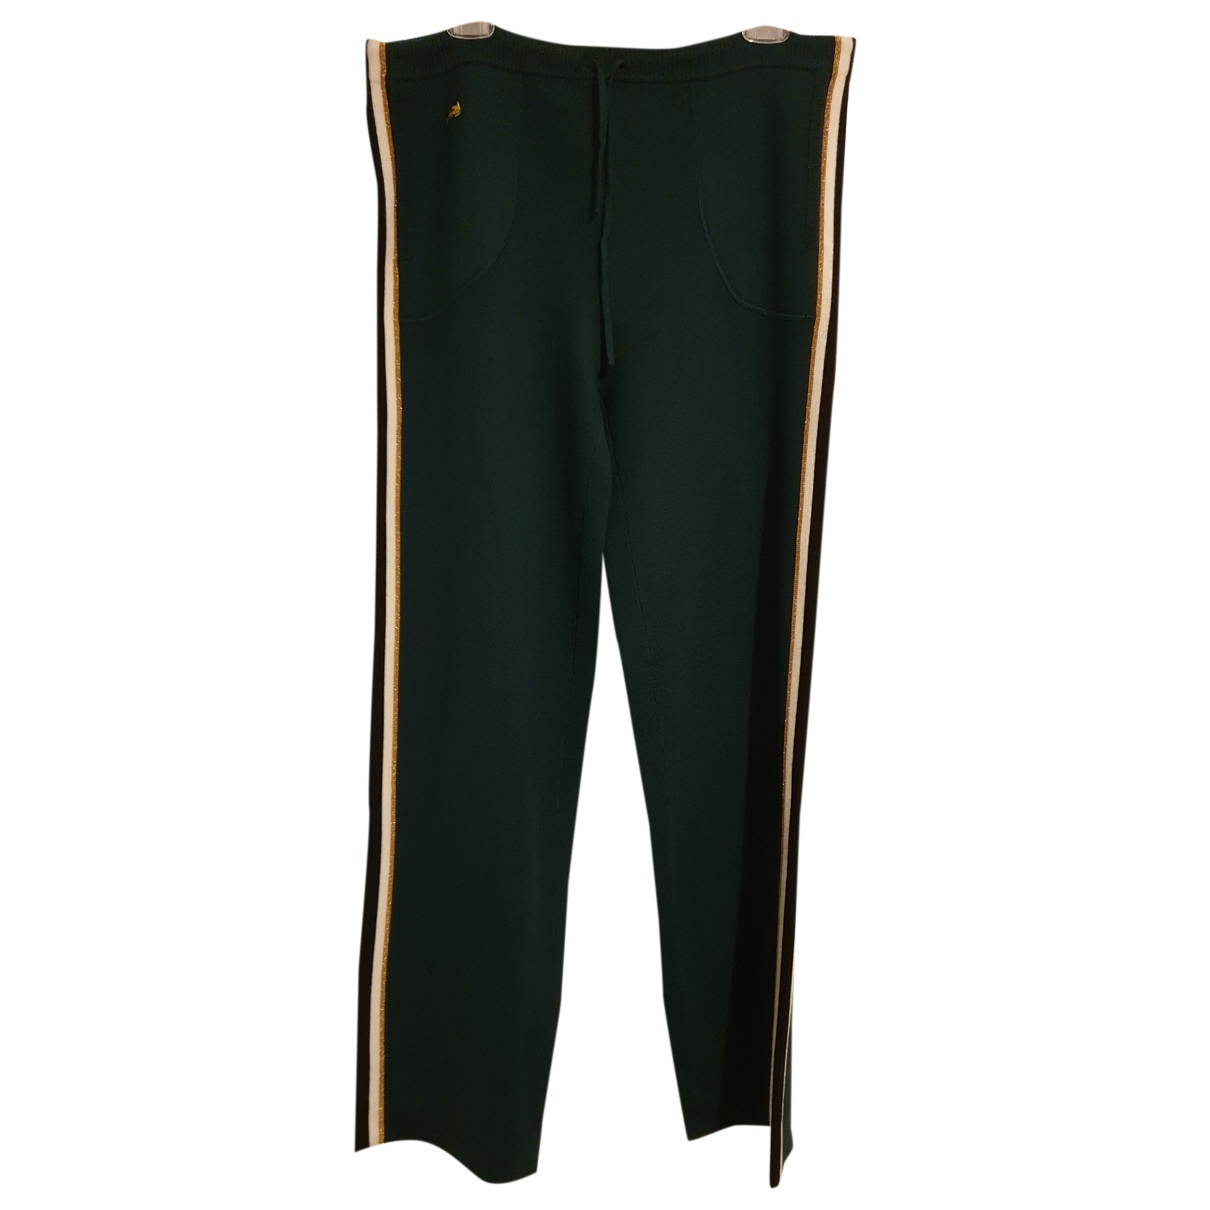 Bella Freud \N Green Wool Trousers for Women XL International